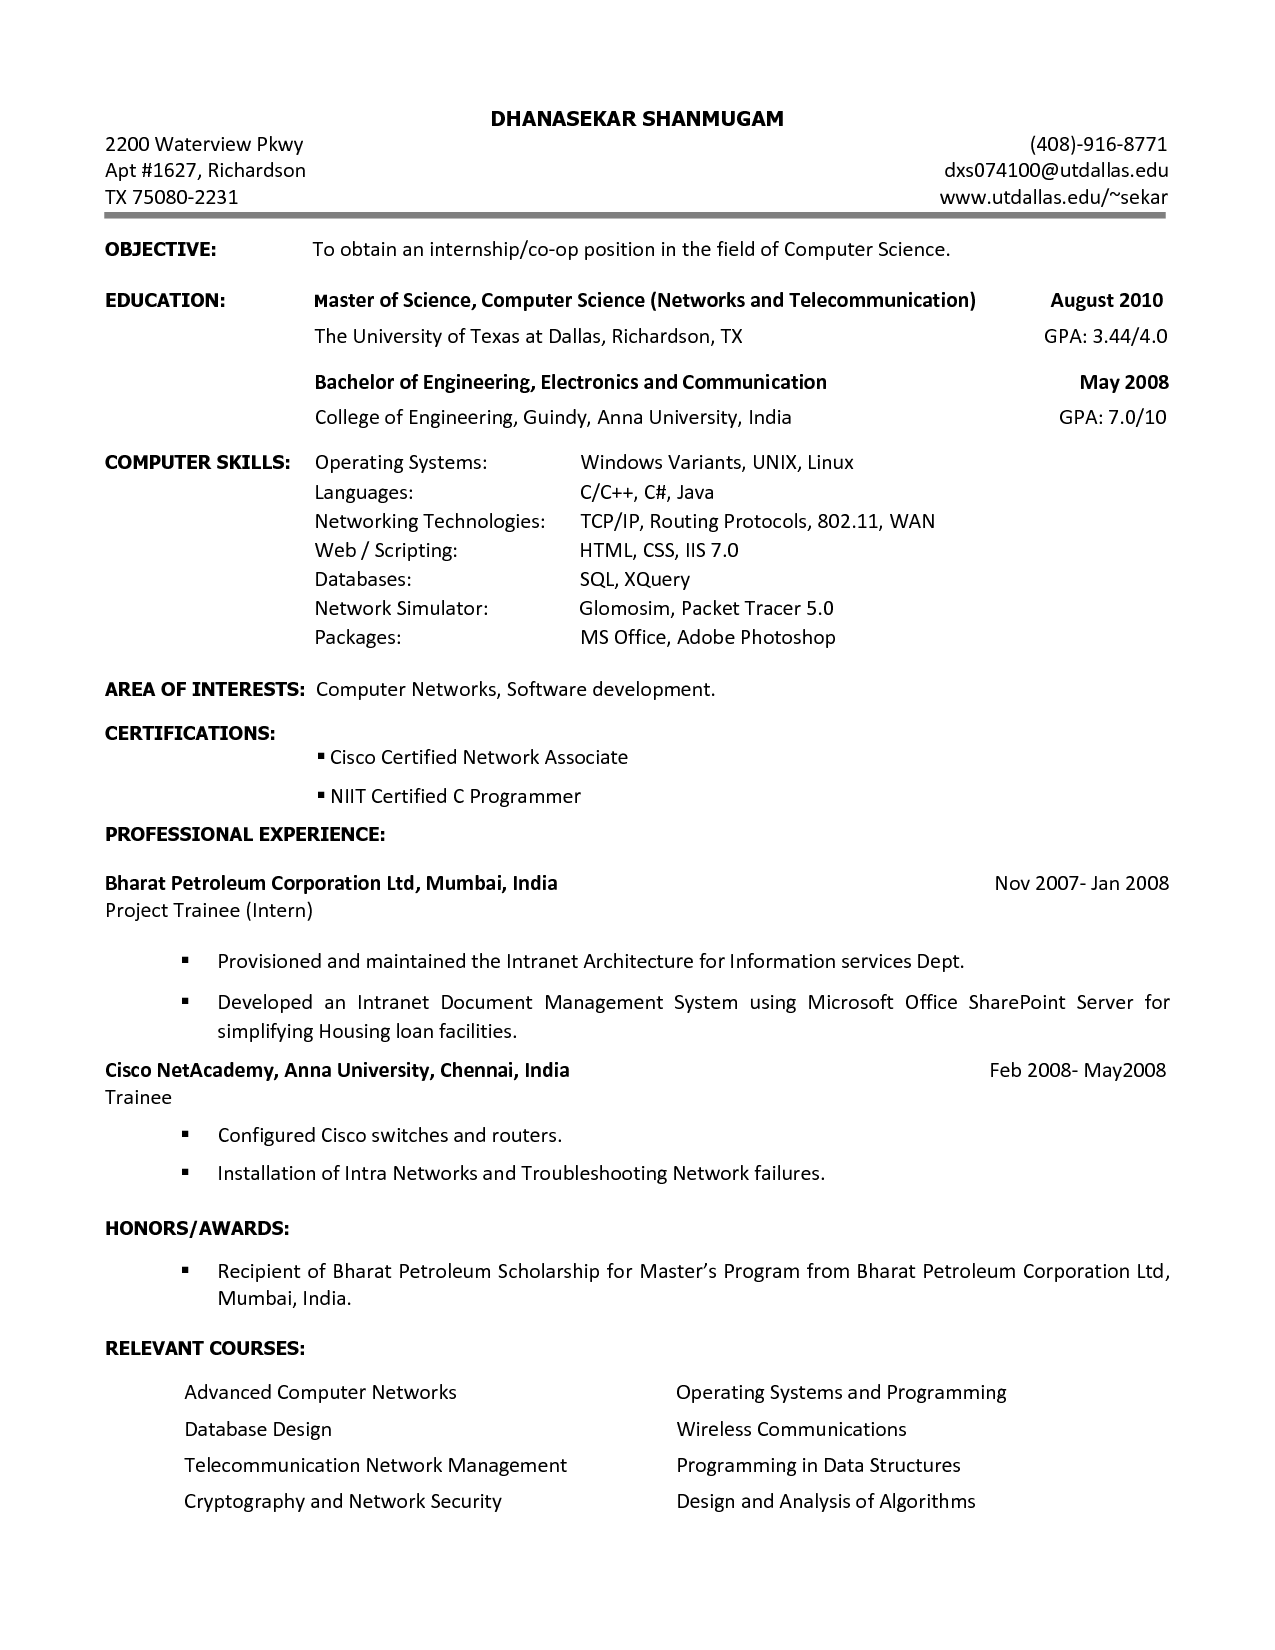 Resume Builder Resume Builder Free Download free resume